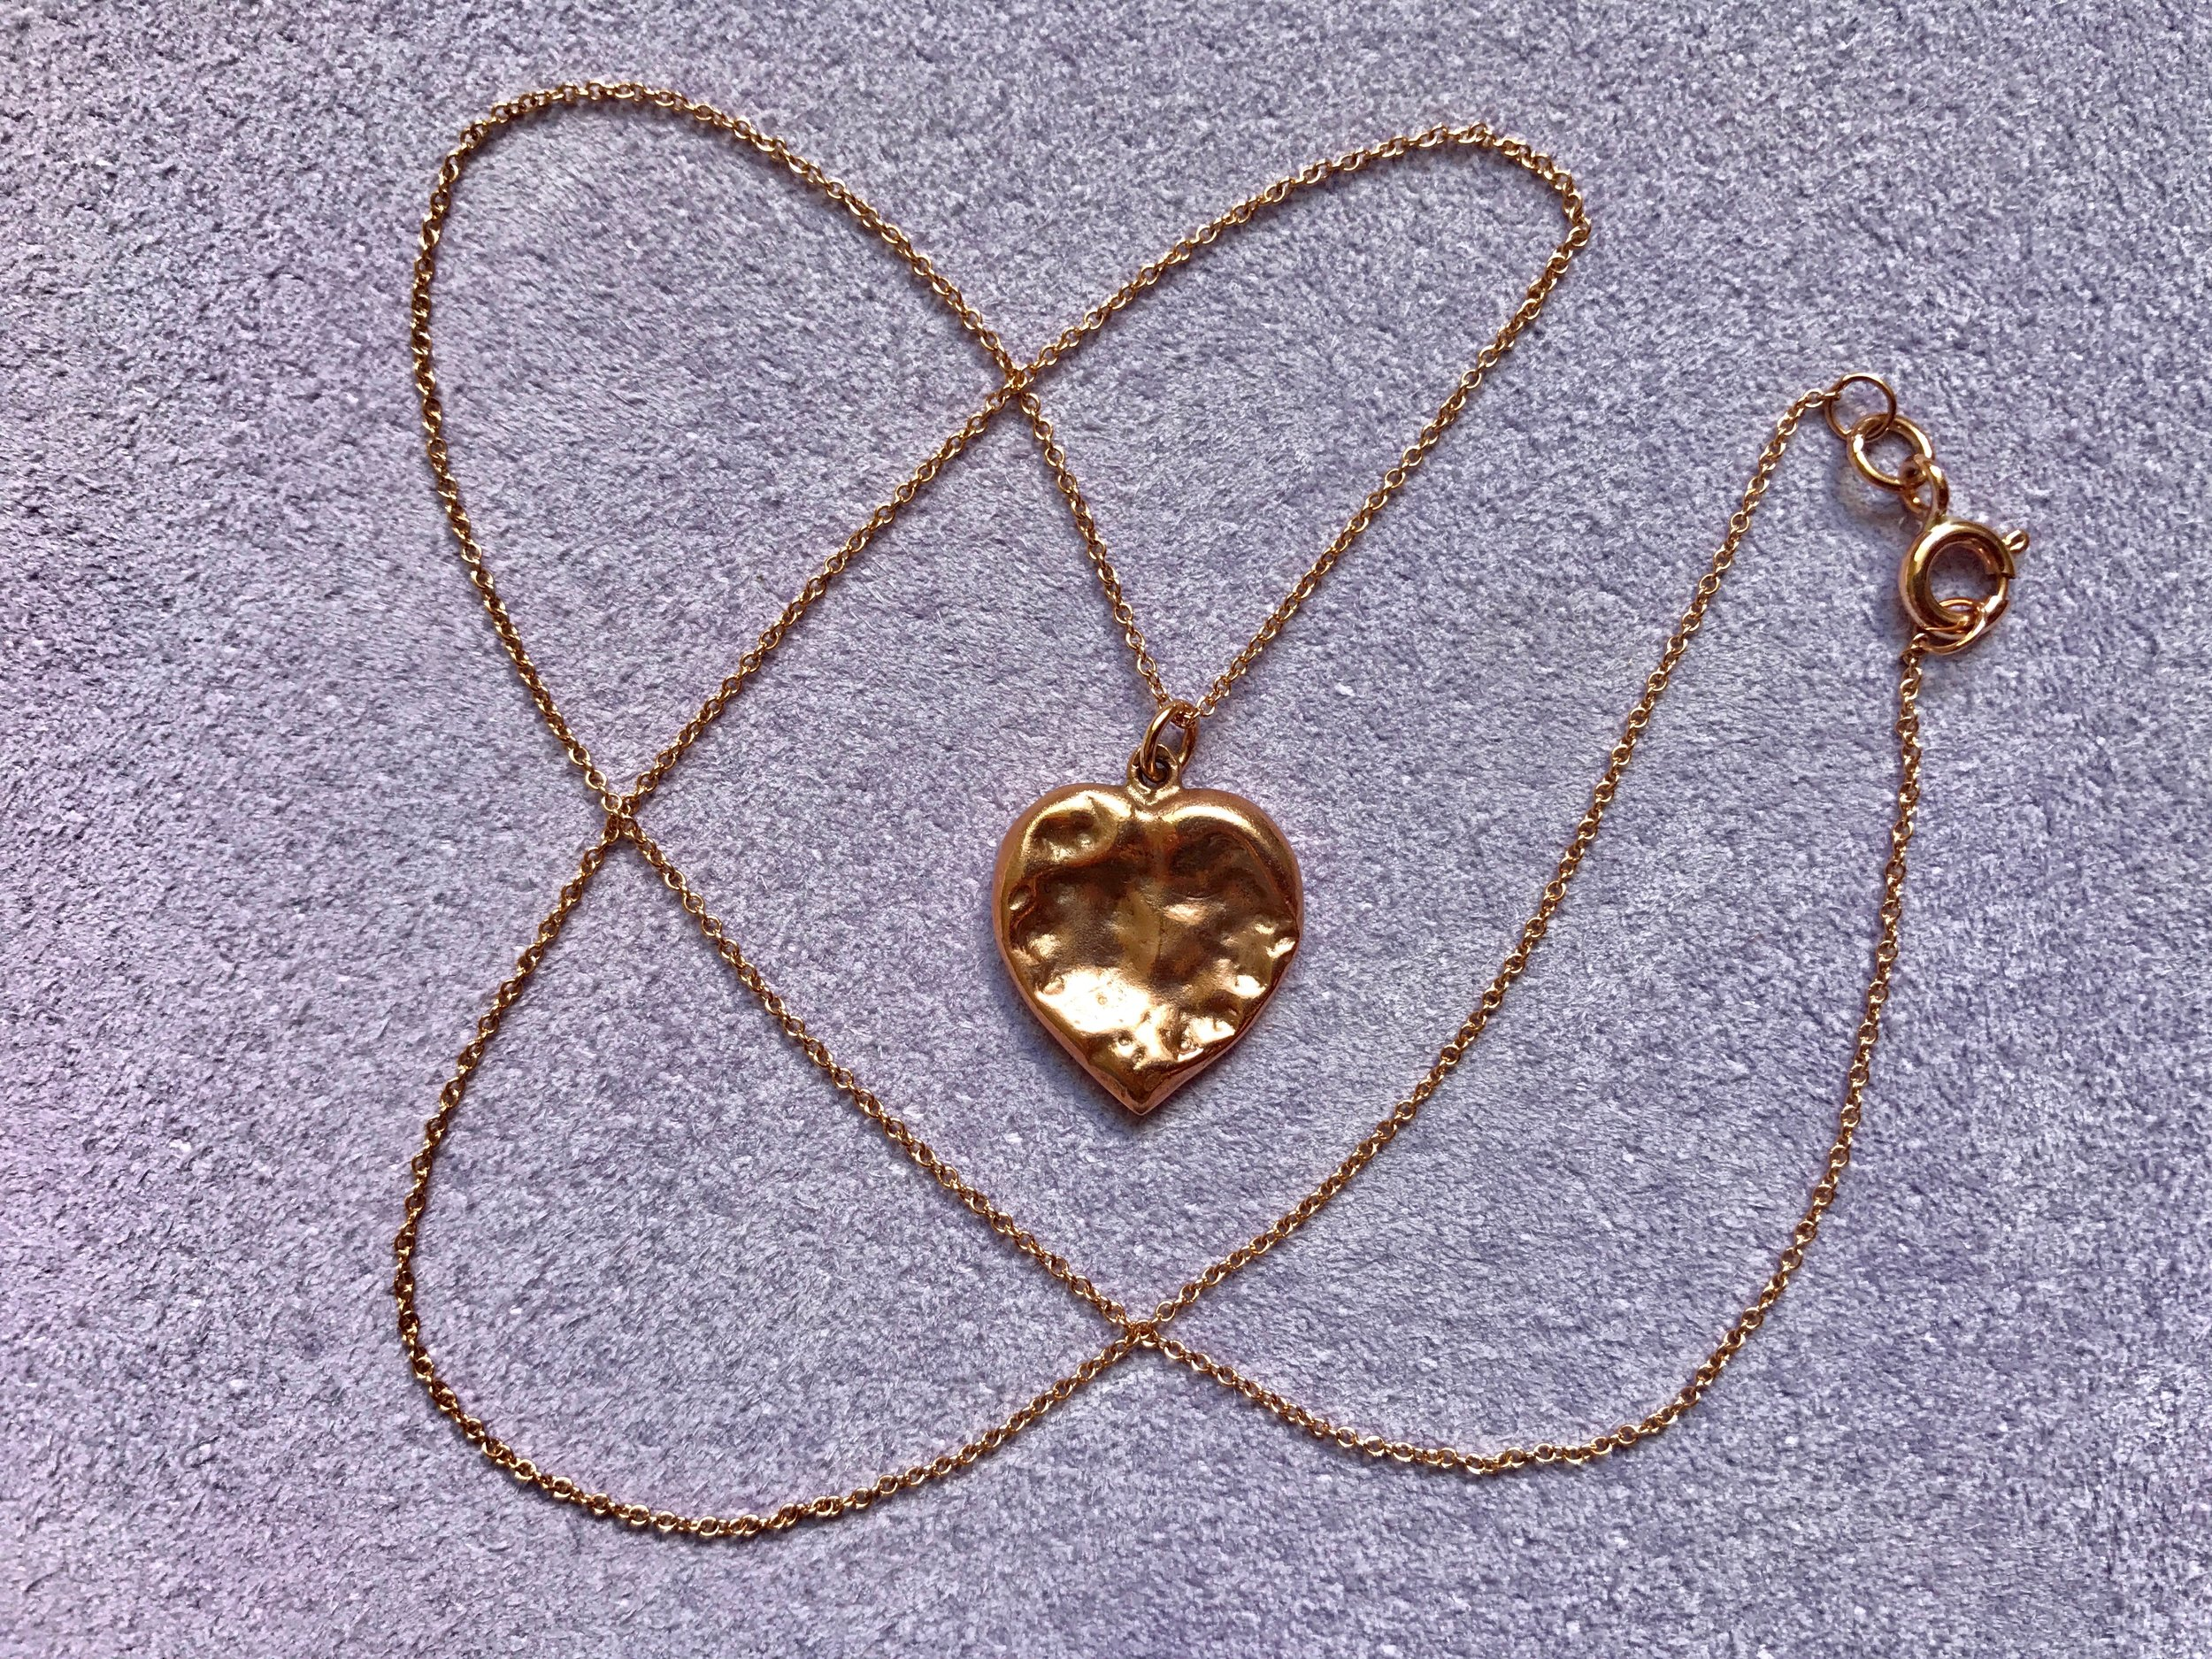 ROSE GOLD CHEWED HEART PENDANT NECKLACE